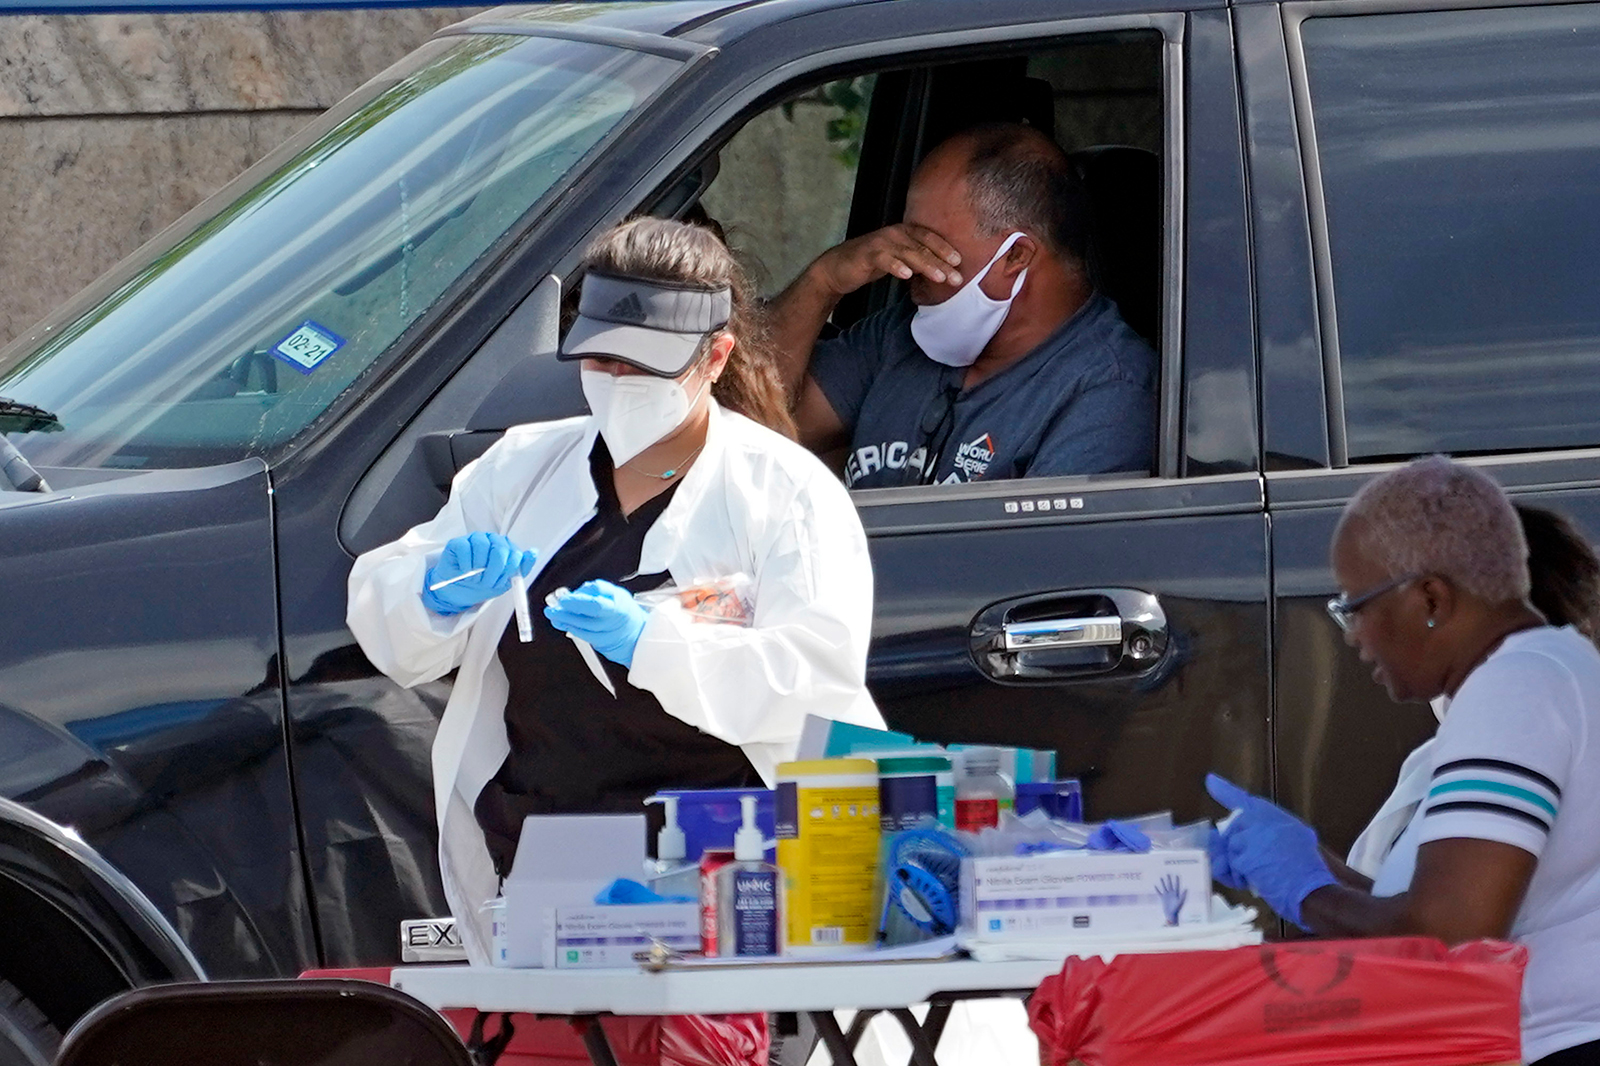 A patient reacts after a healthcare worker collected a sample at a United Memorial Medical Center Covid-19 testing site on July 16, in Houston.